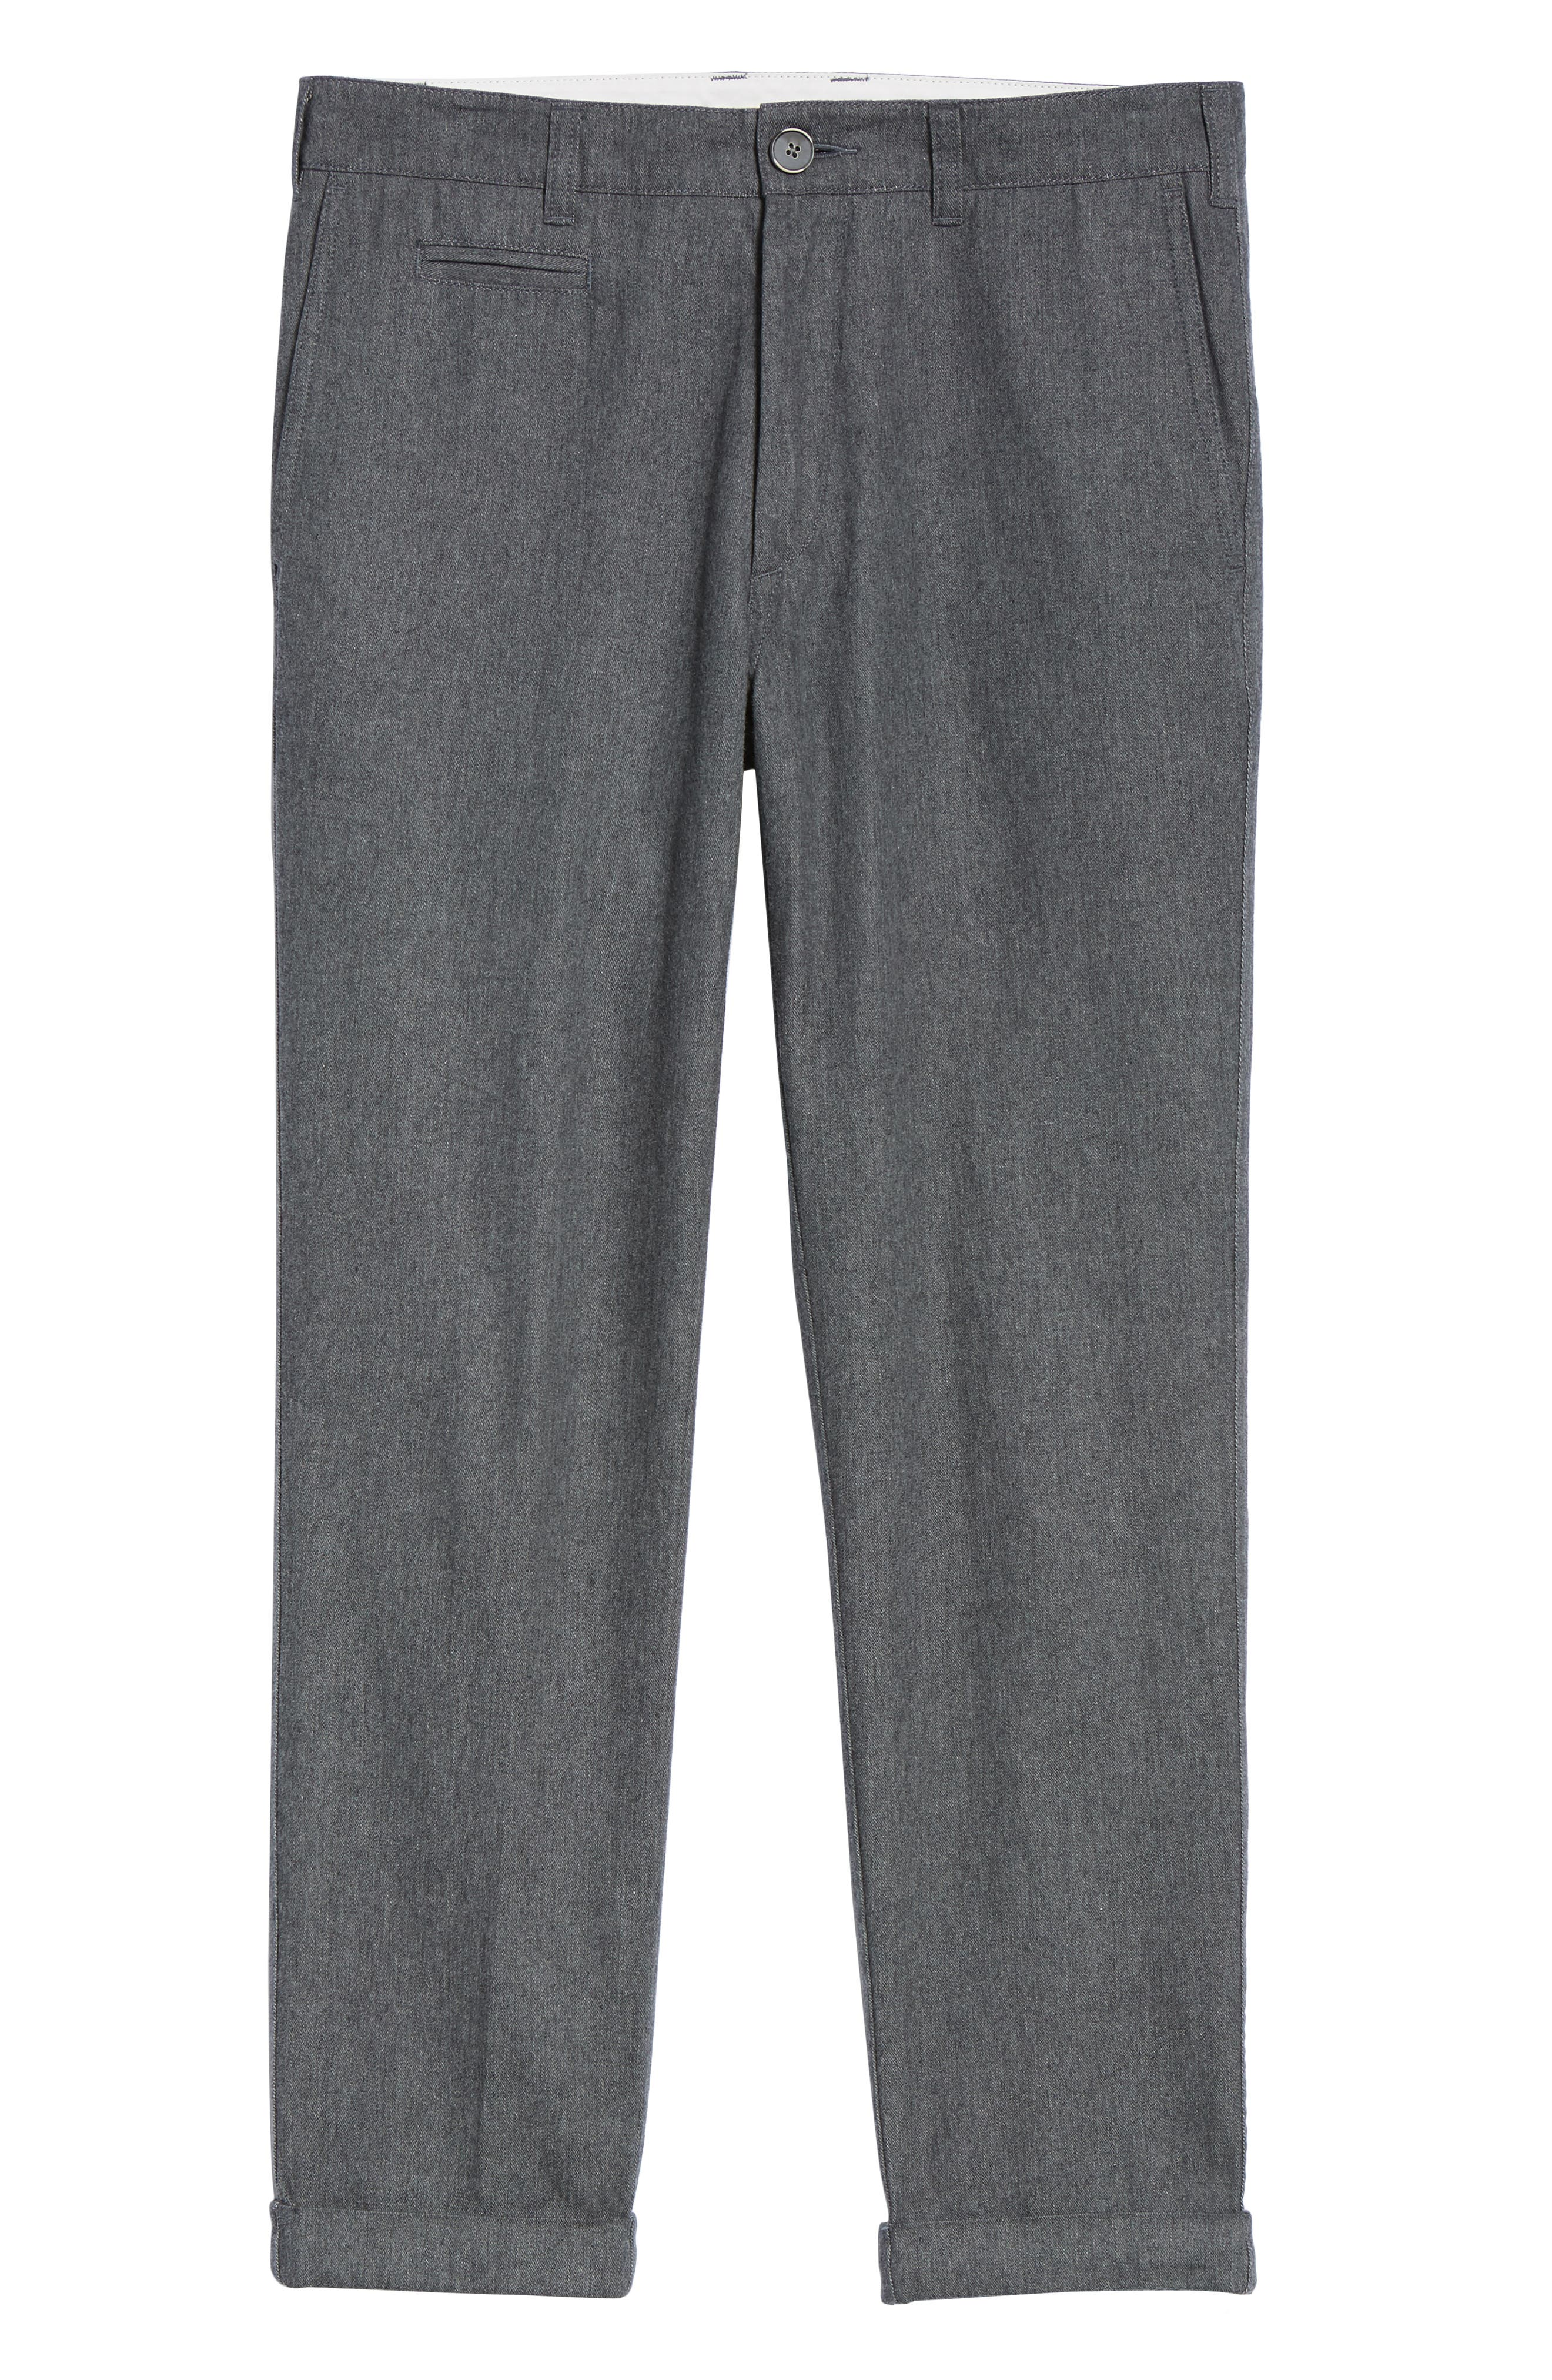 LIFE/AFTER/DENIM,                             Bixi Slim Cotton Twill Trousers,                             Alternate thumbnail 6, color,                             HEATHER CHARCOAL